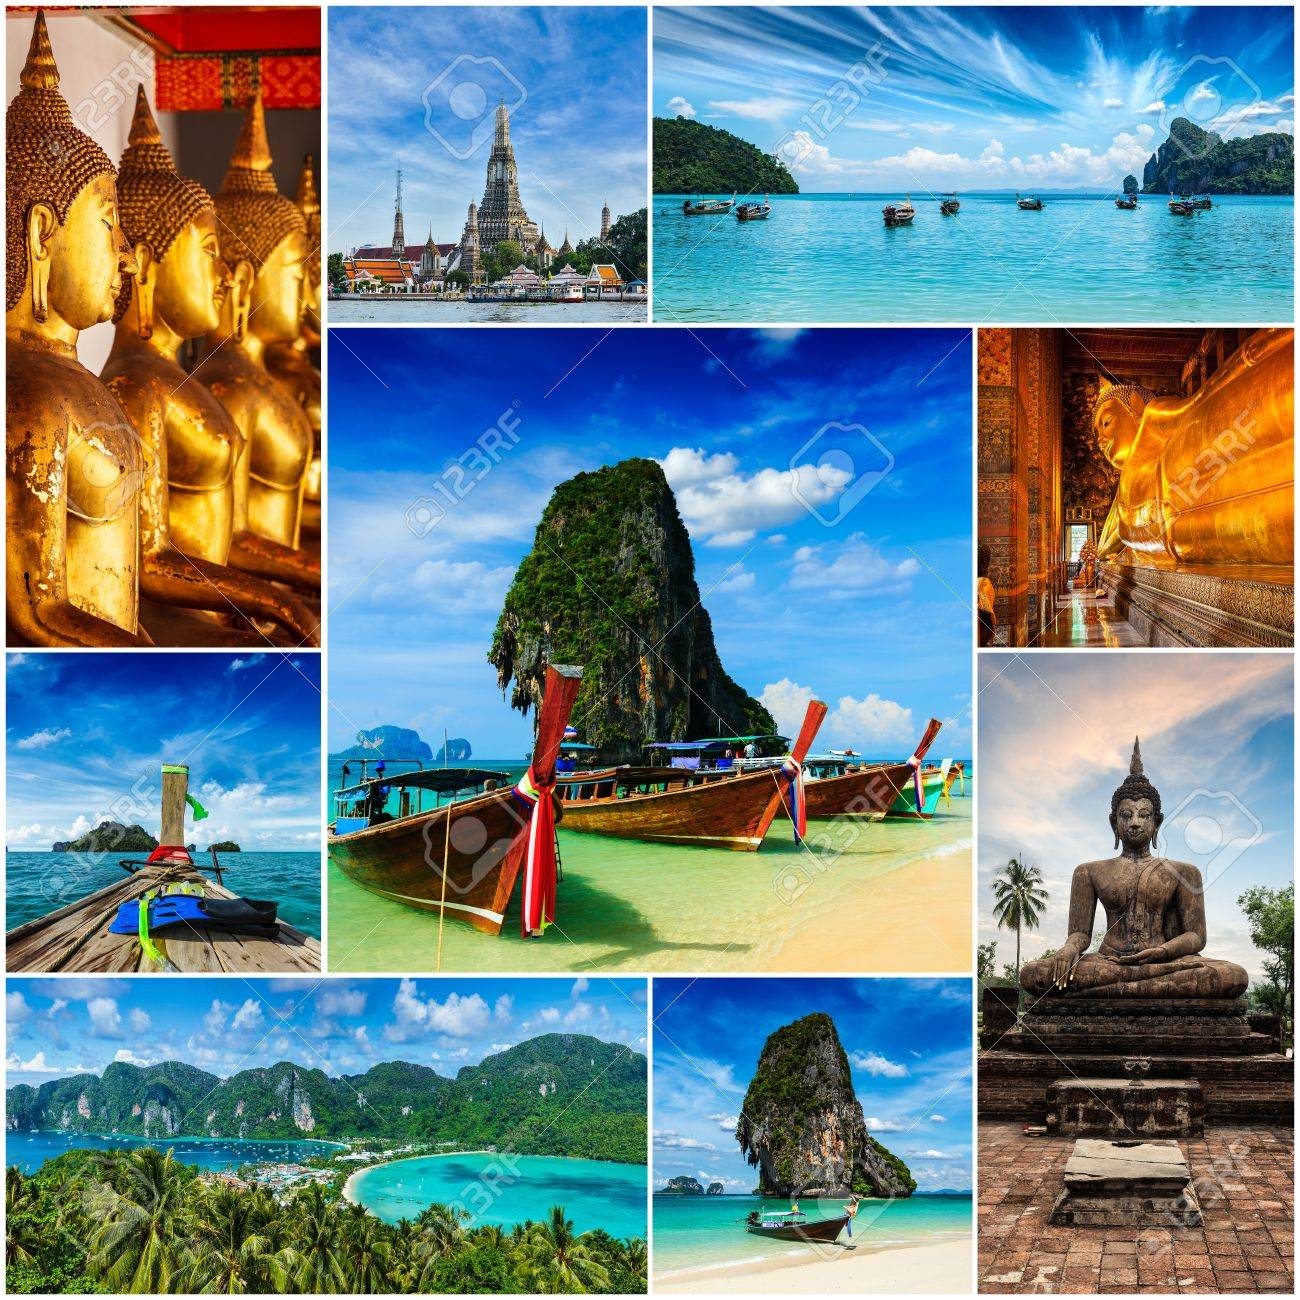 Collage Of Thailand Images Stock Photo